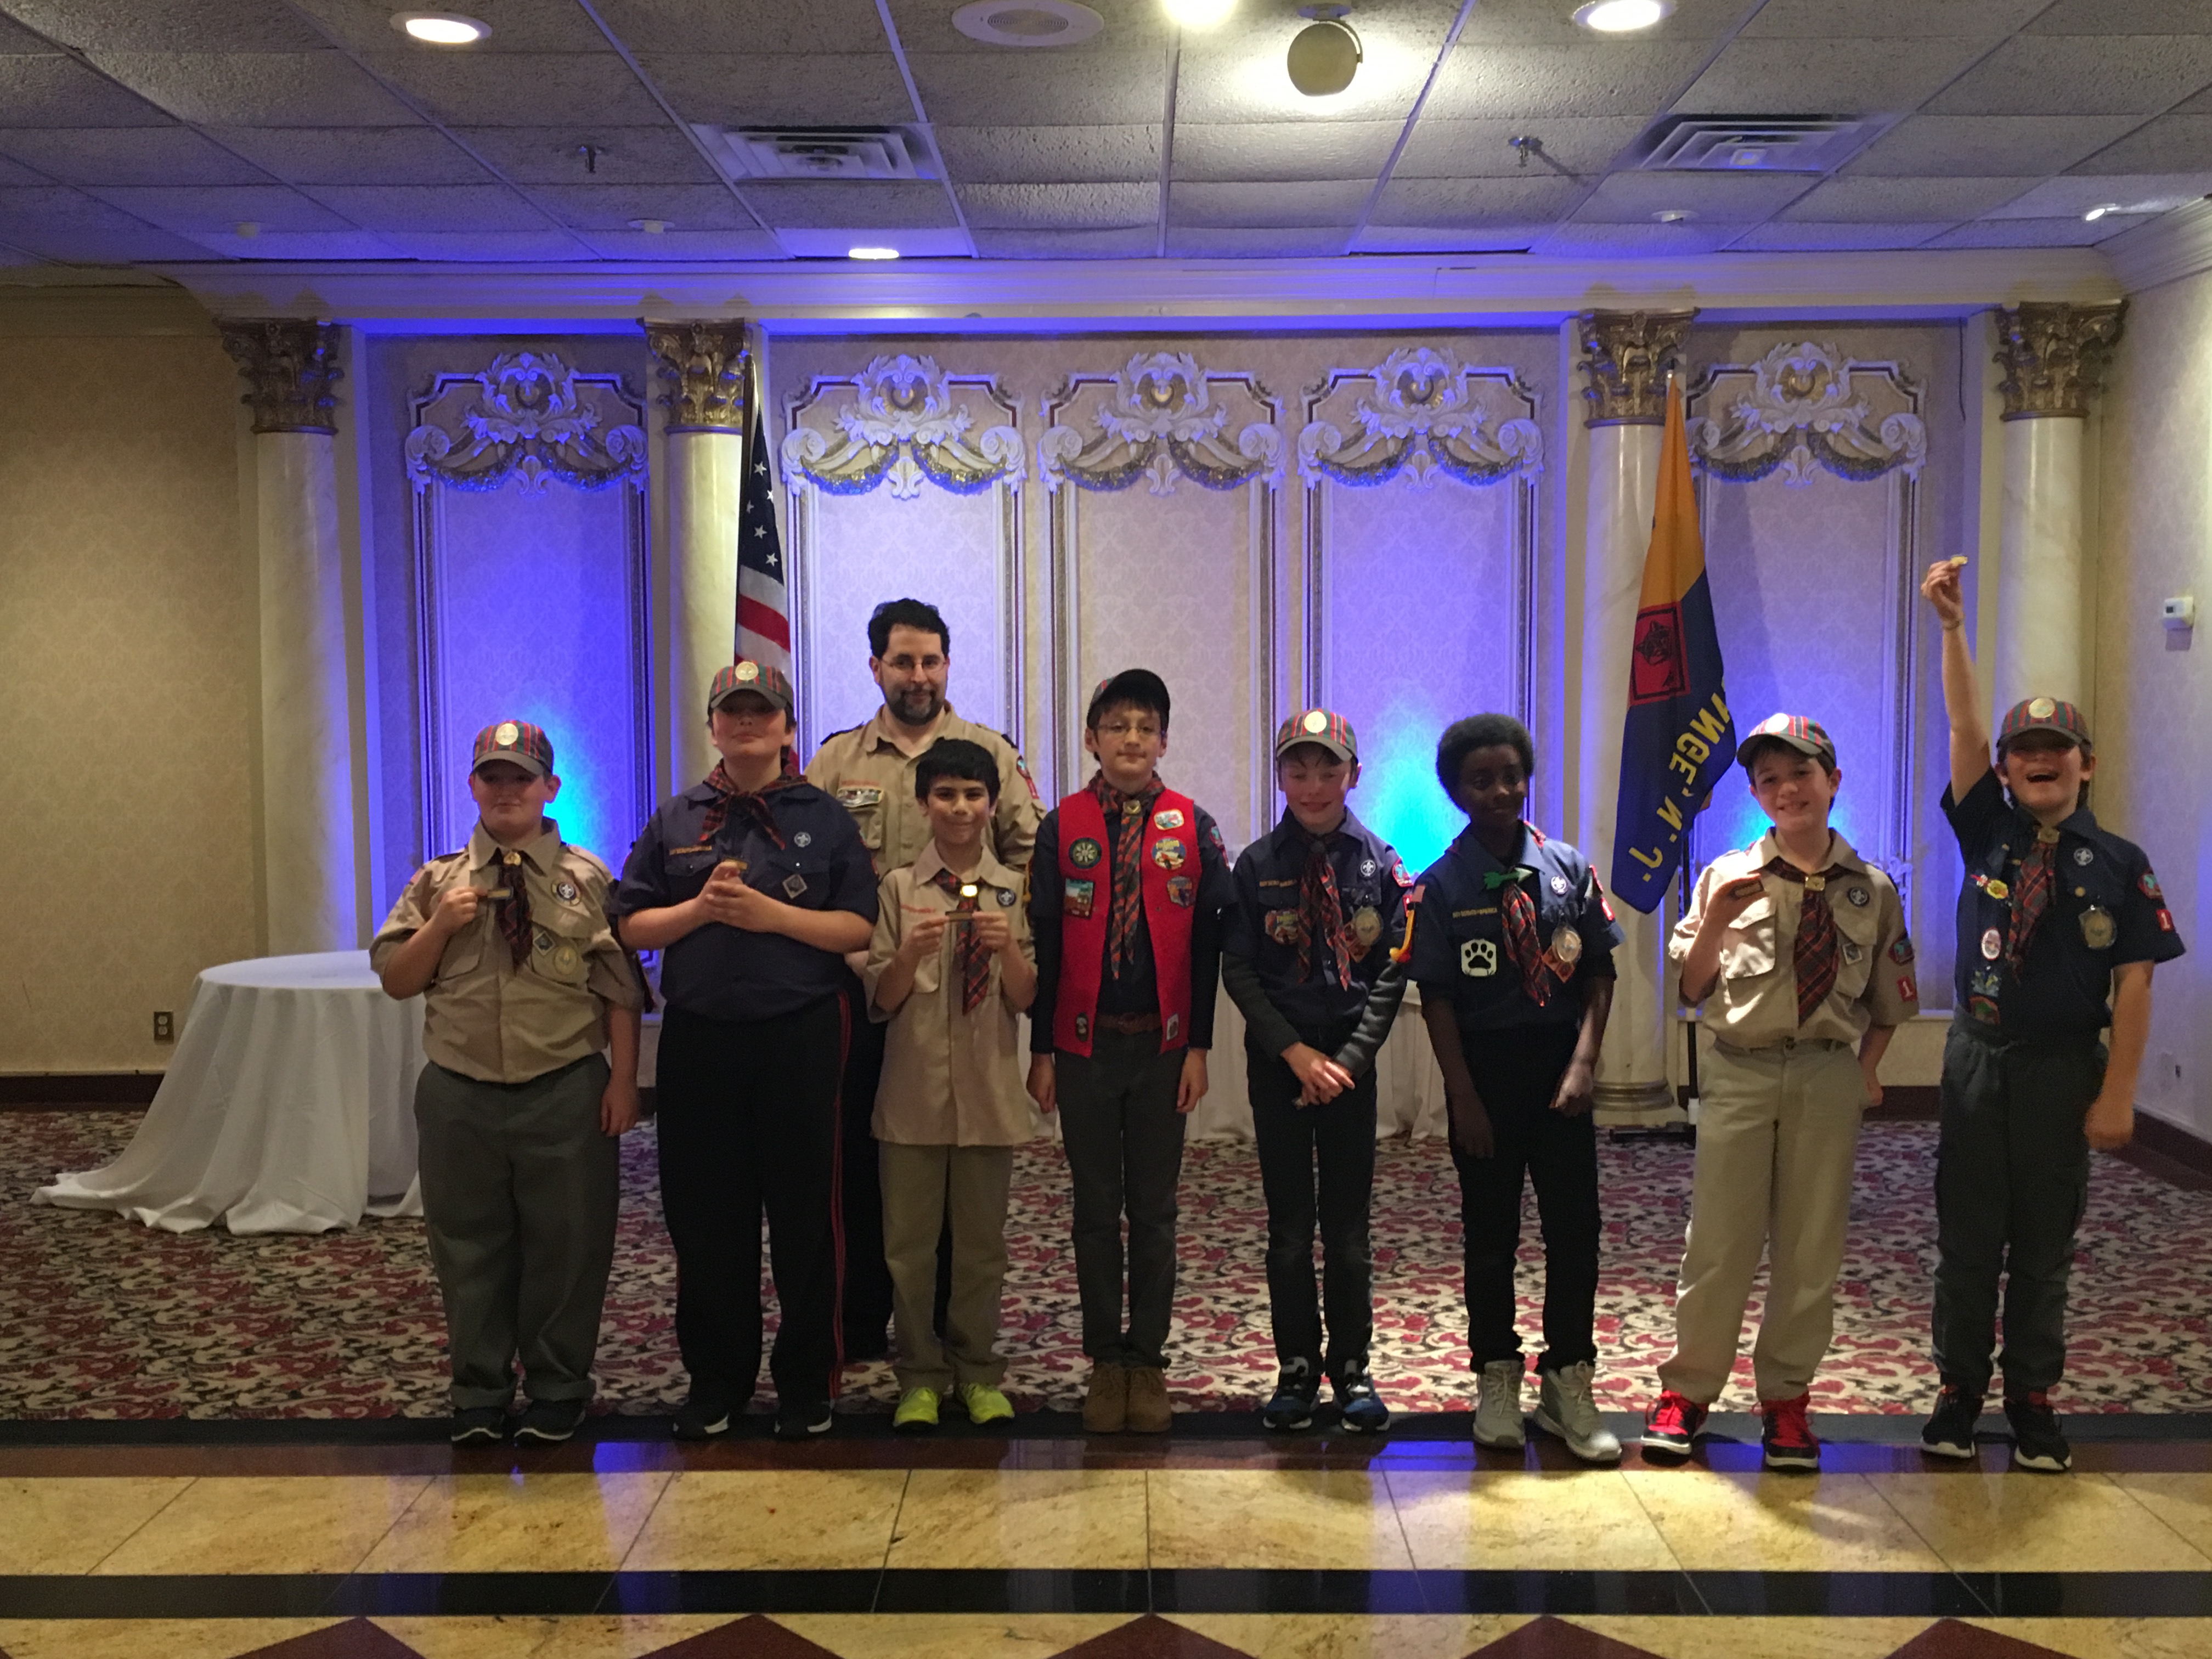 437f3608b2fdf6611884_f2a2f2209e4ed6265e43_Cub_Scouts_Pack_107_Congratulates_Weblos_in_Boy_Scout_Moving_Up_Ceremony.jpg